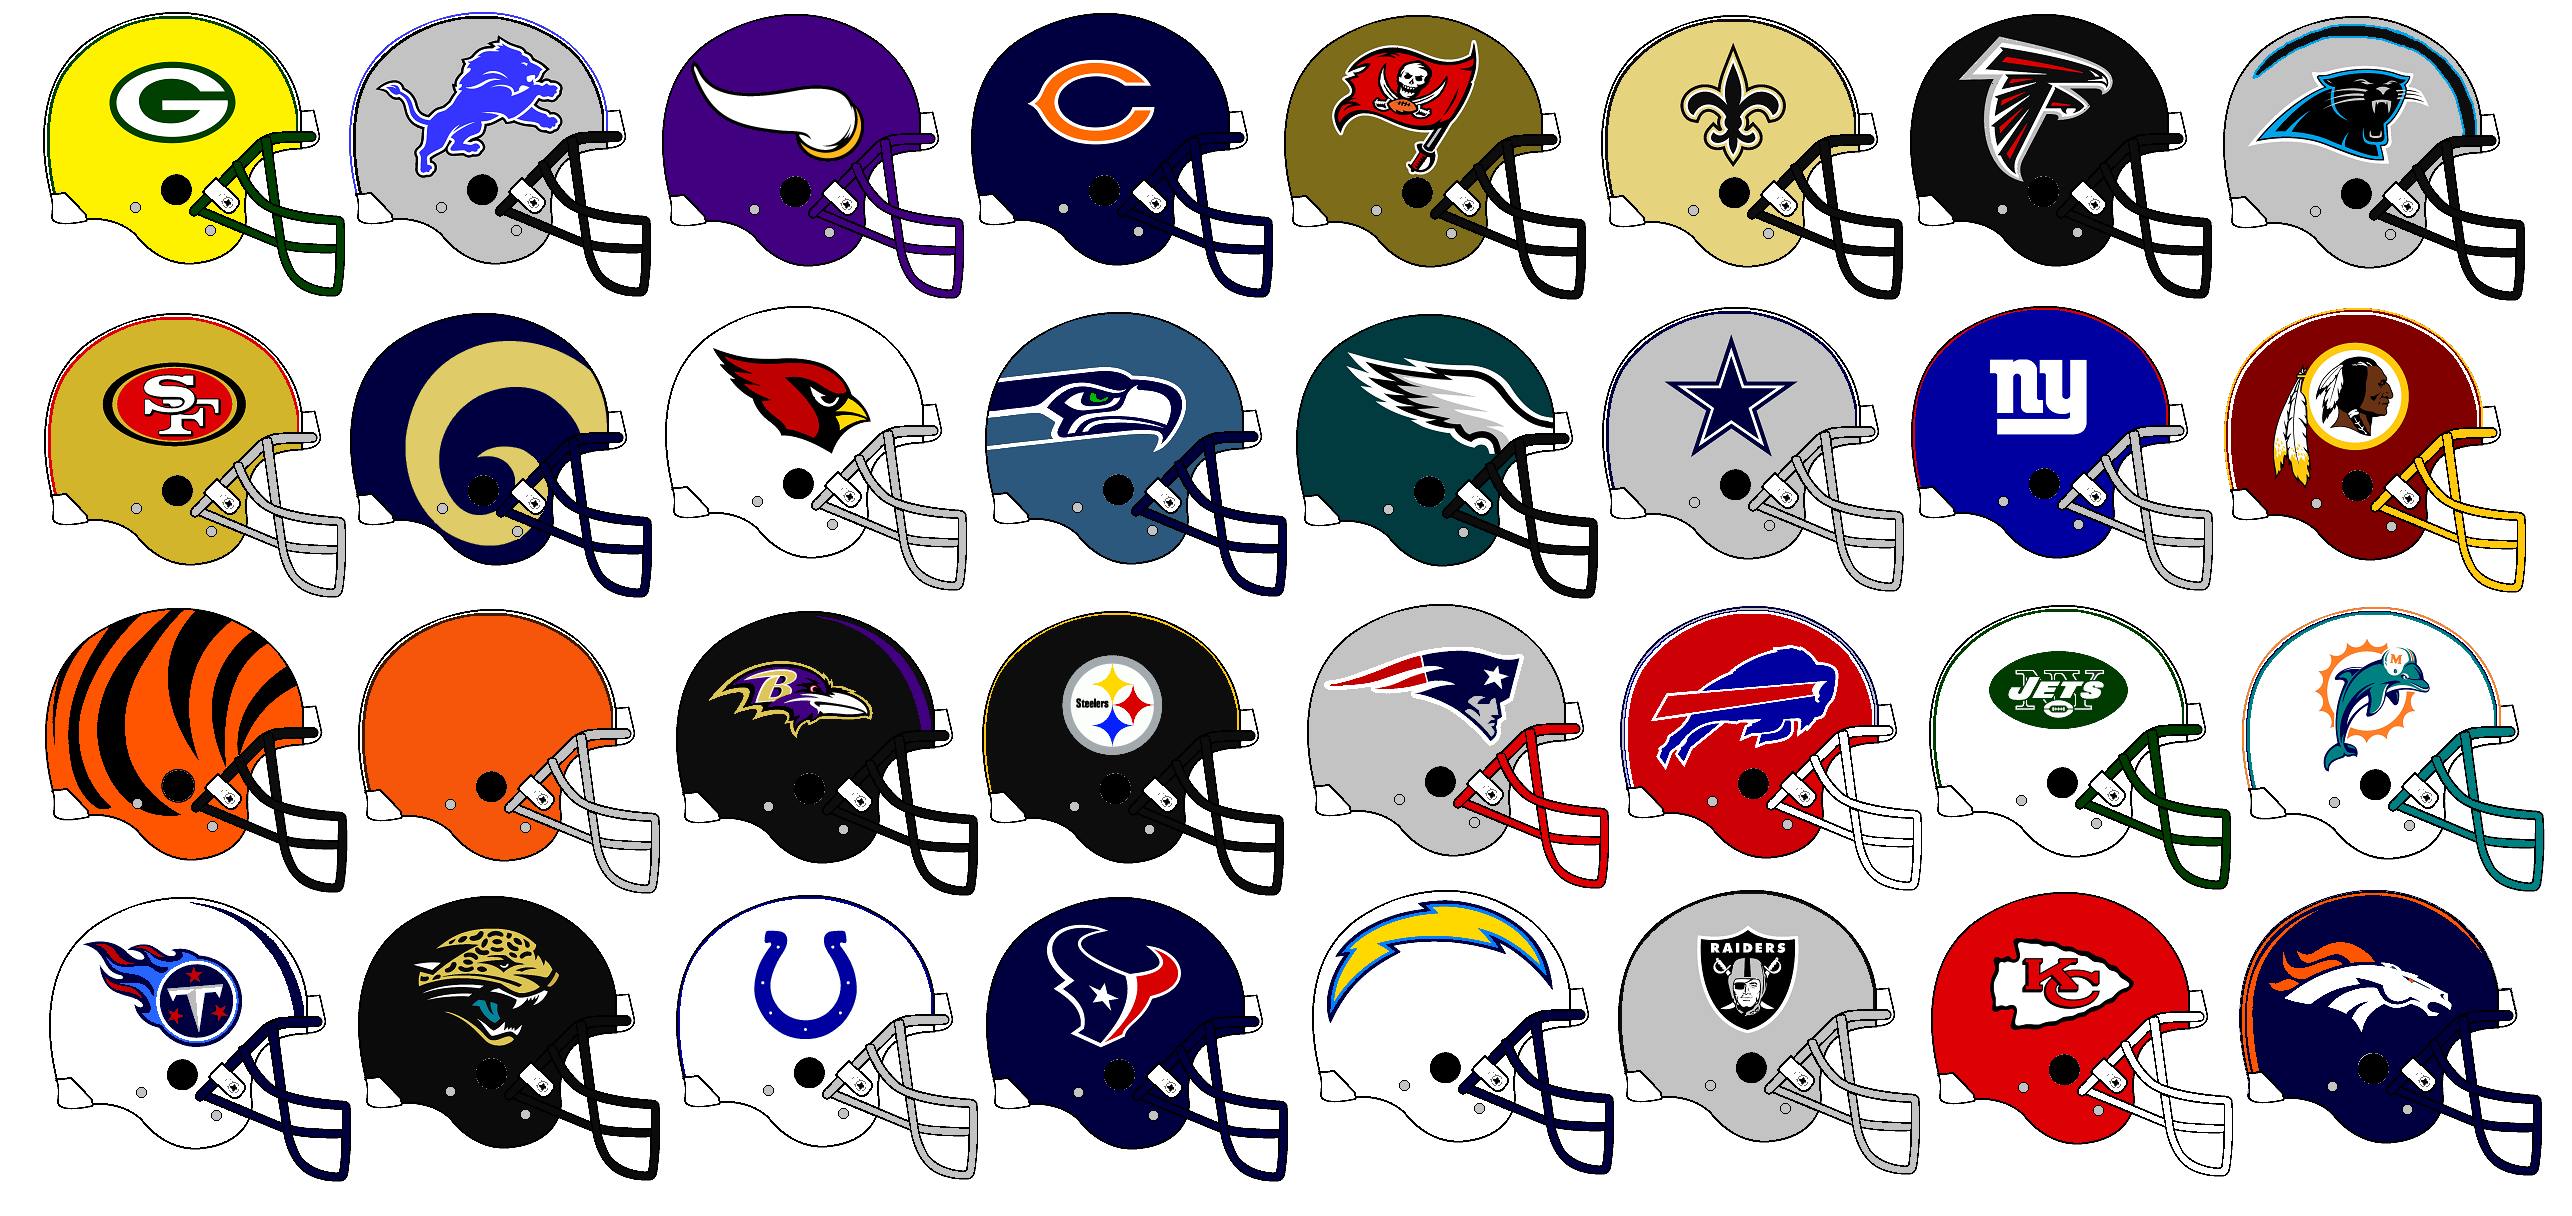 Clipart nfl teams xmas card picture.